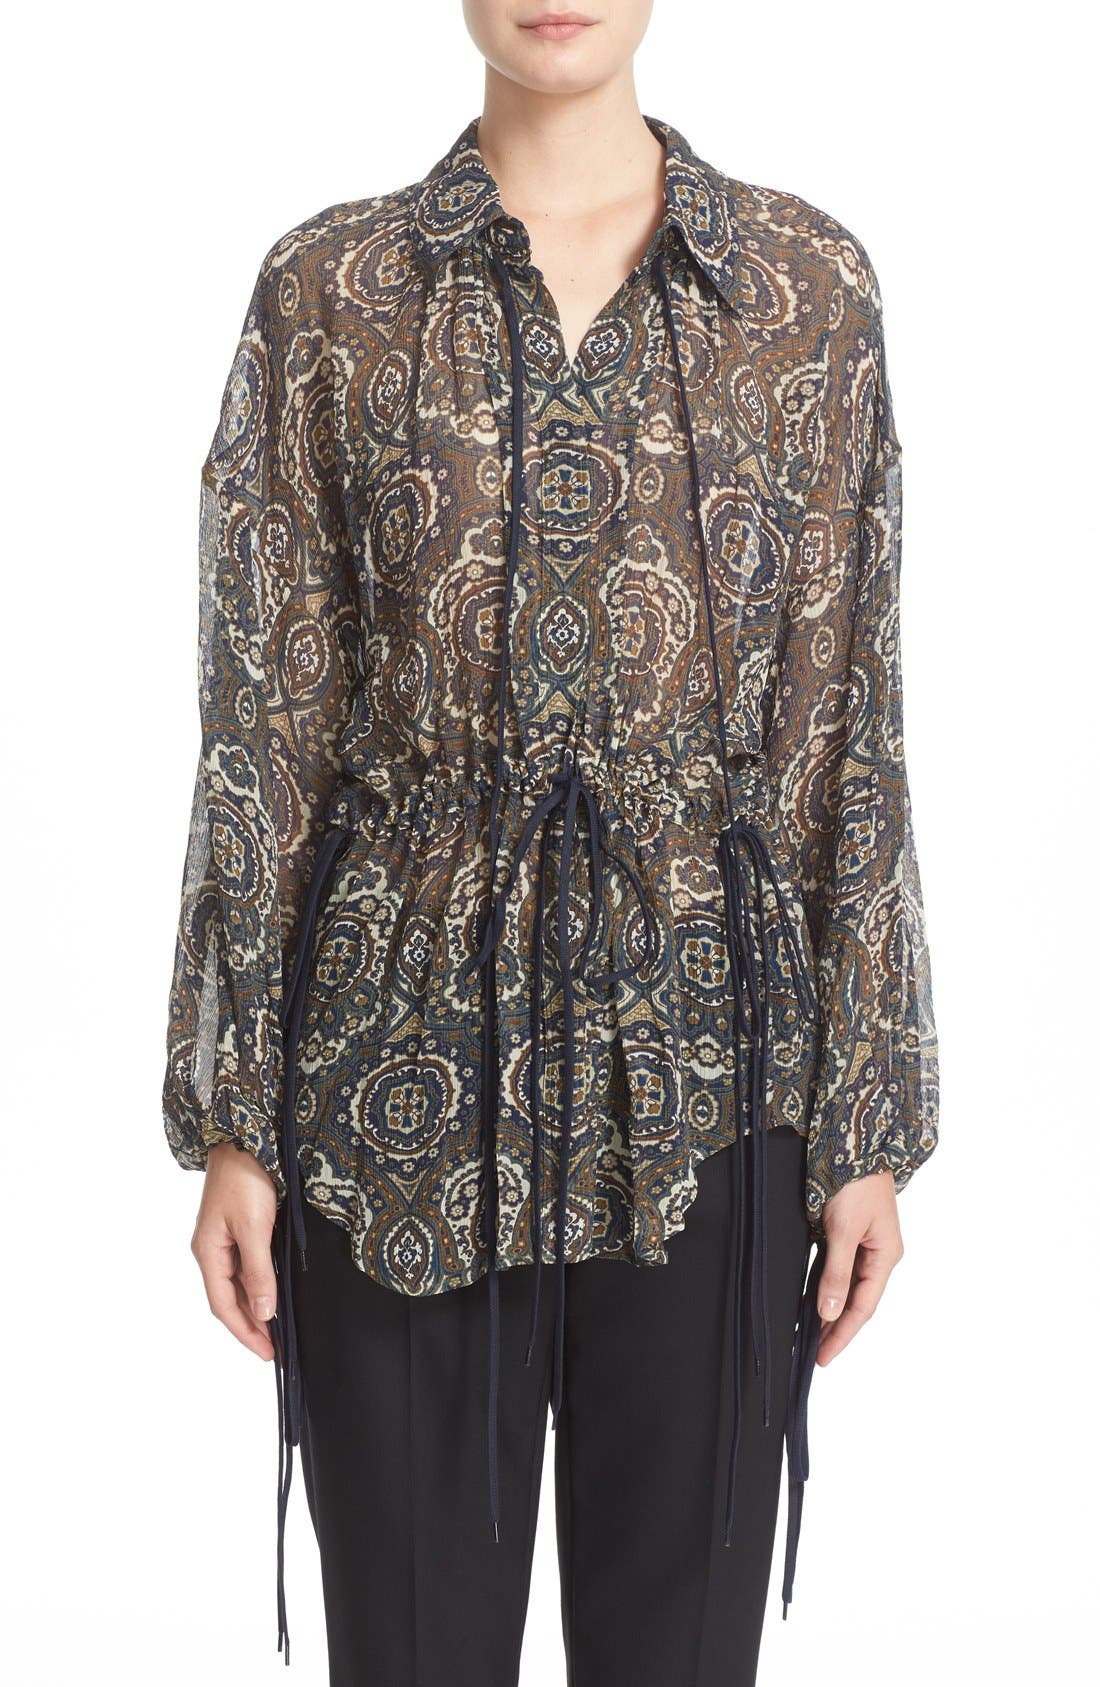 Alternate Image 1 Selected - Chloé Medallion Print Silk Crepon Blouse